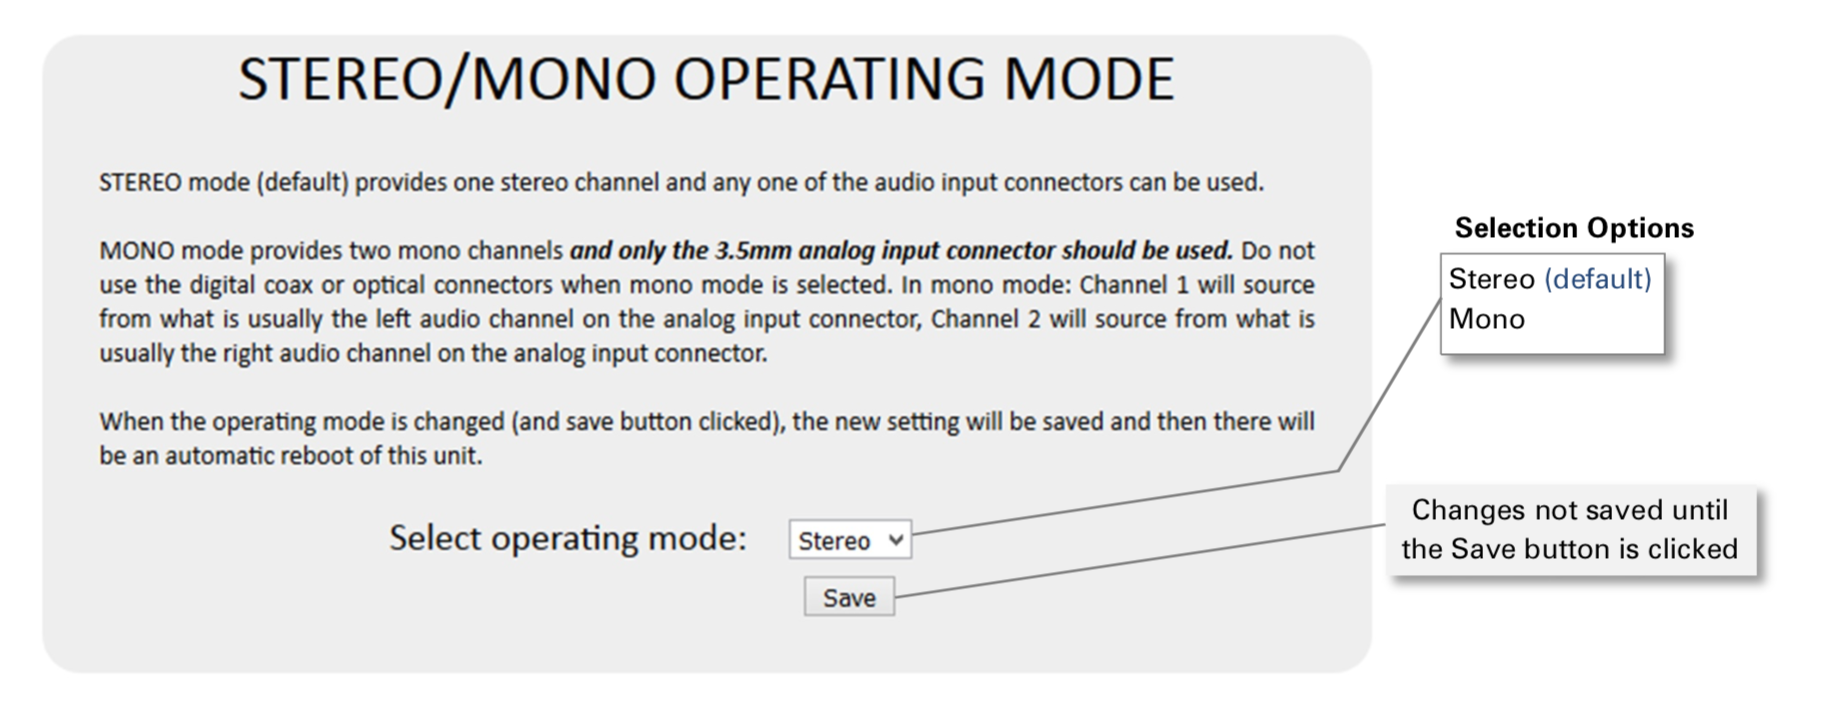 AudioFetch Express Stereo:Mono Operating Mode